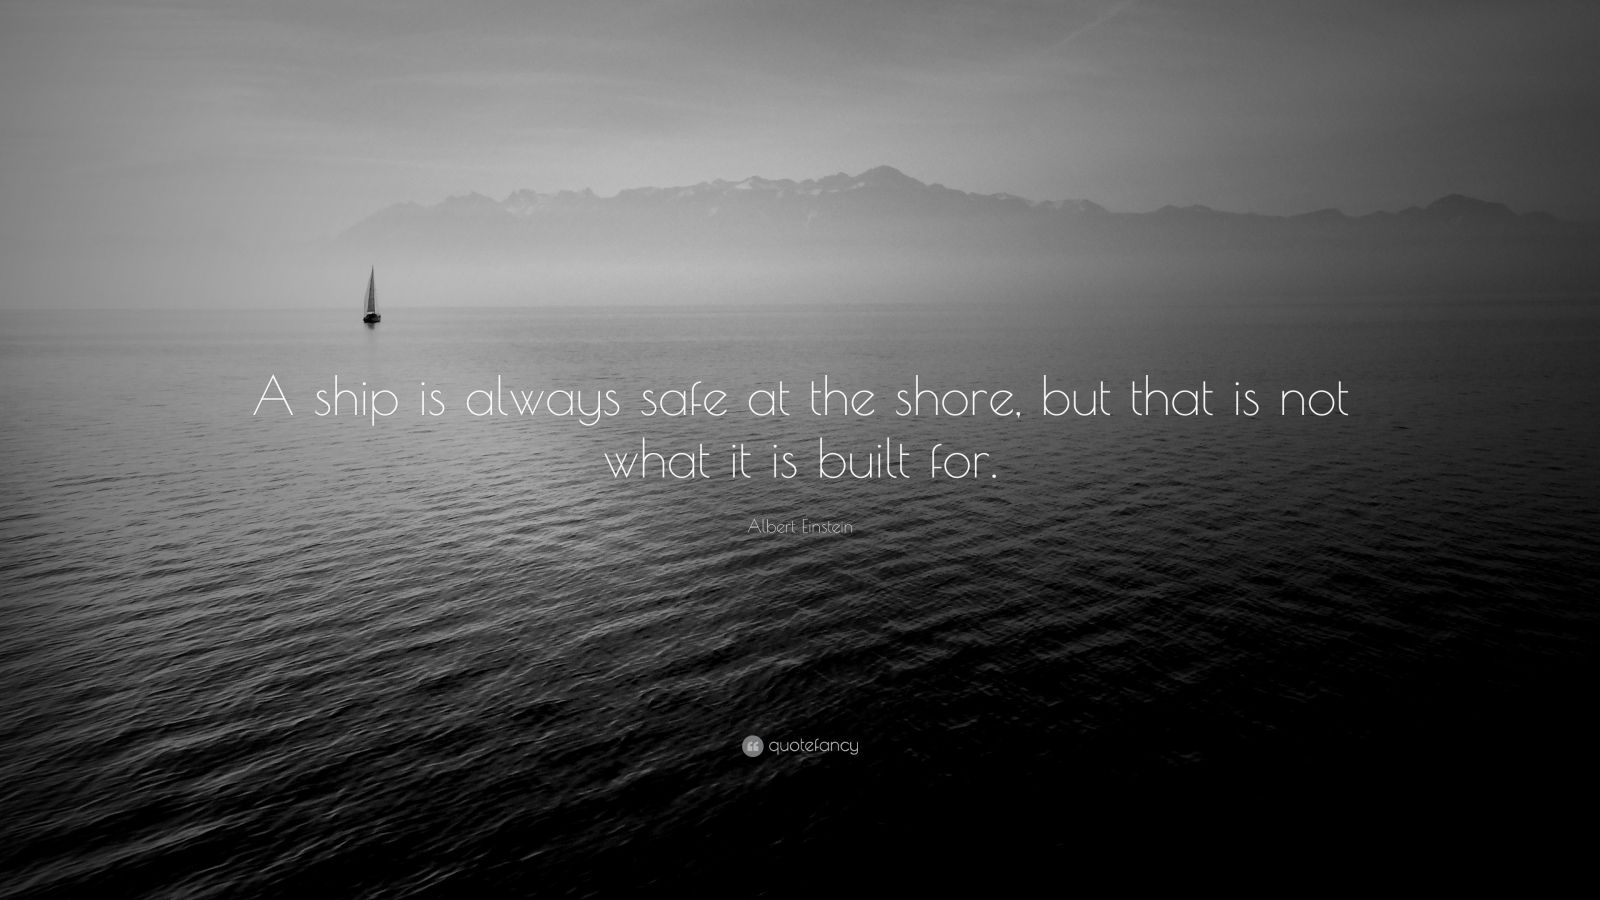 Albert Einstein Quotes  100 wallpapers    Quotefancy Albert Einstein Quote     A ship is always safe at the shore  but that